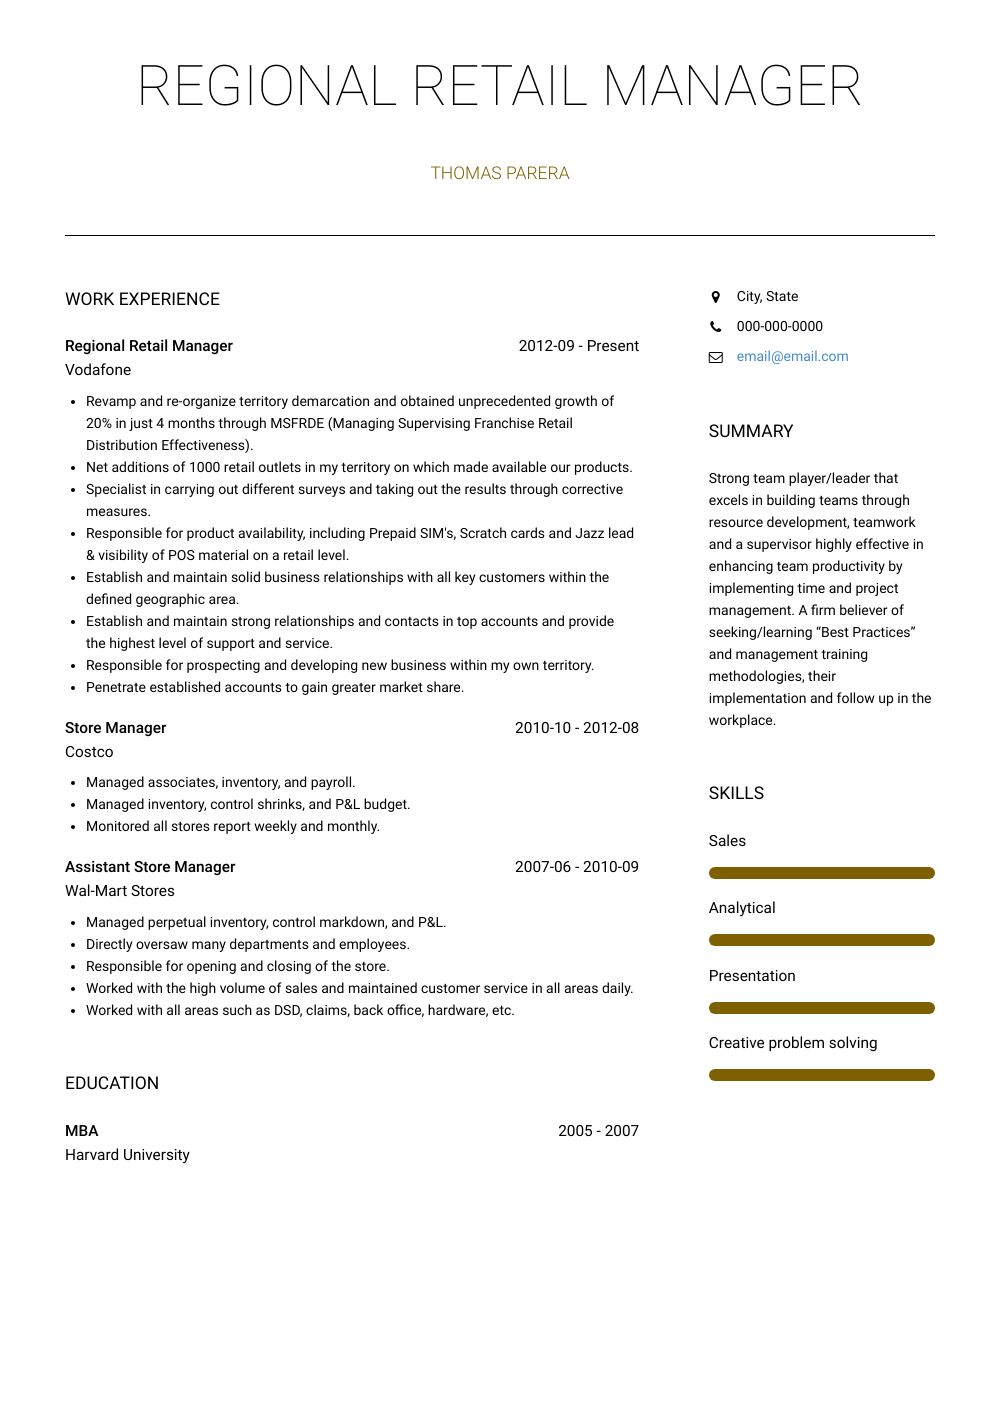 Regional Retail Manager Resume Sample and Template